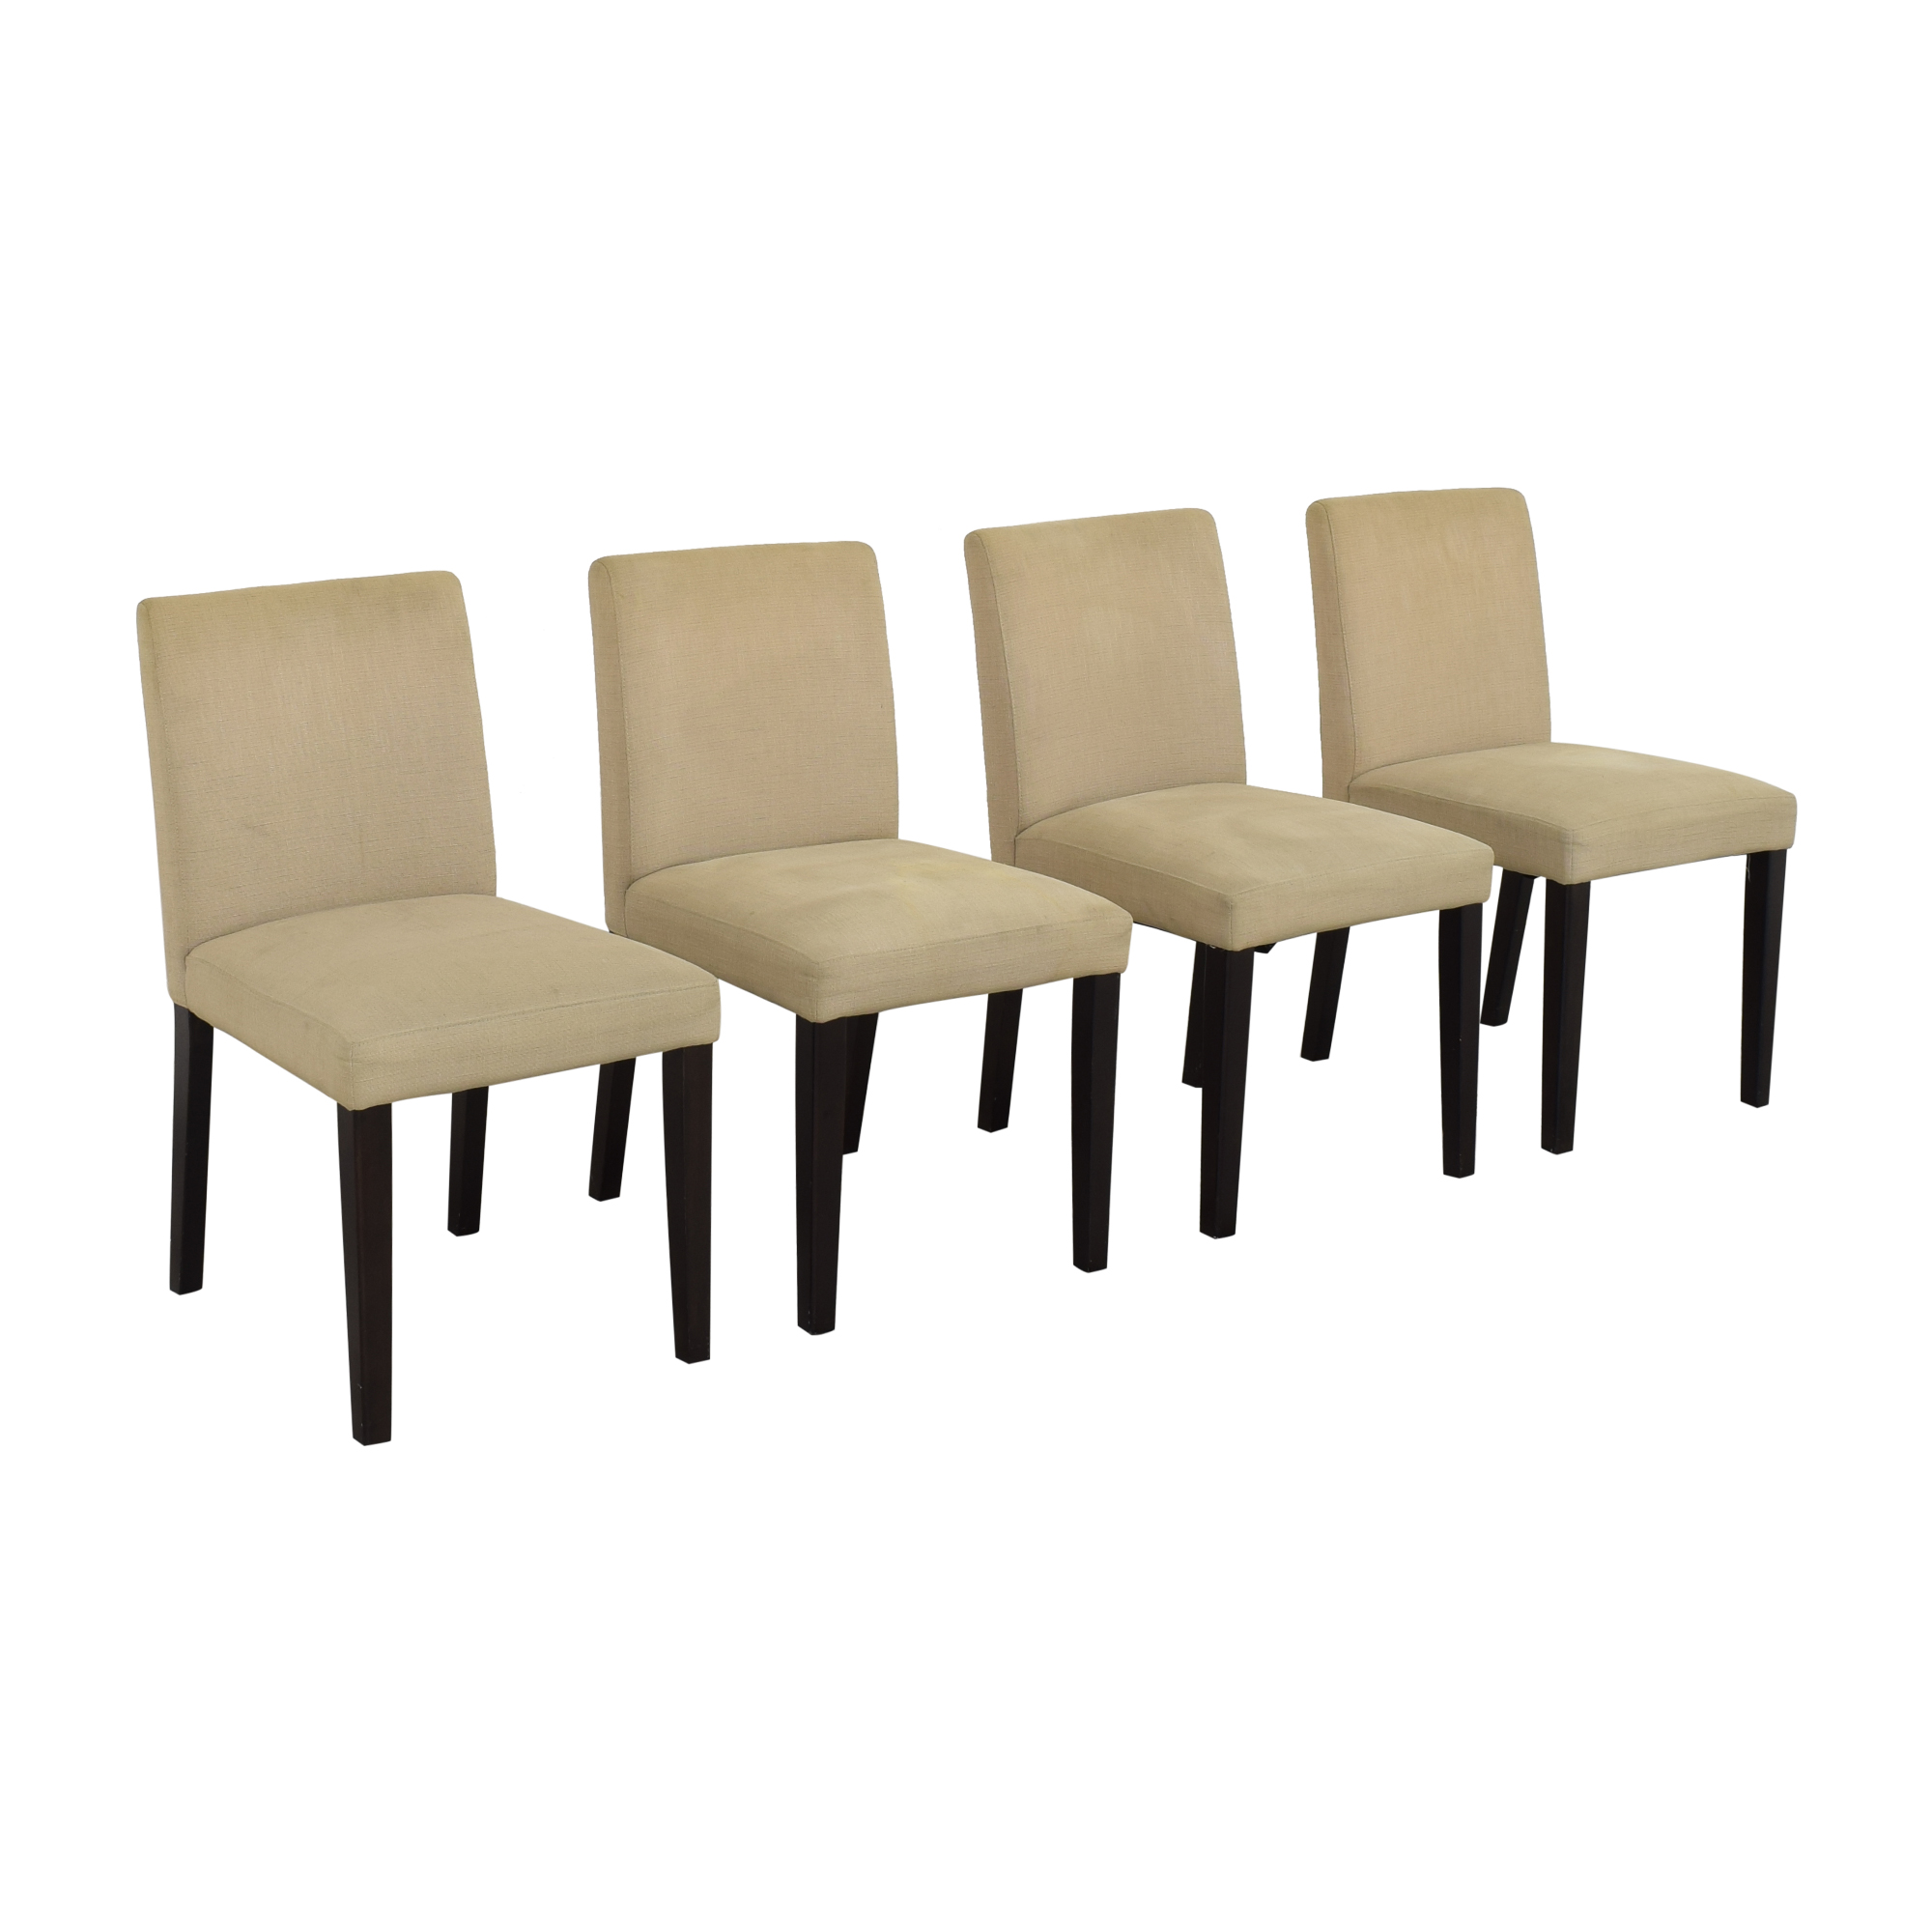 West Elm West Elm Porter Dining Chairs ct